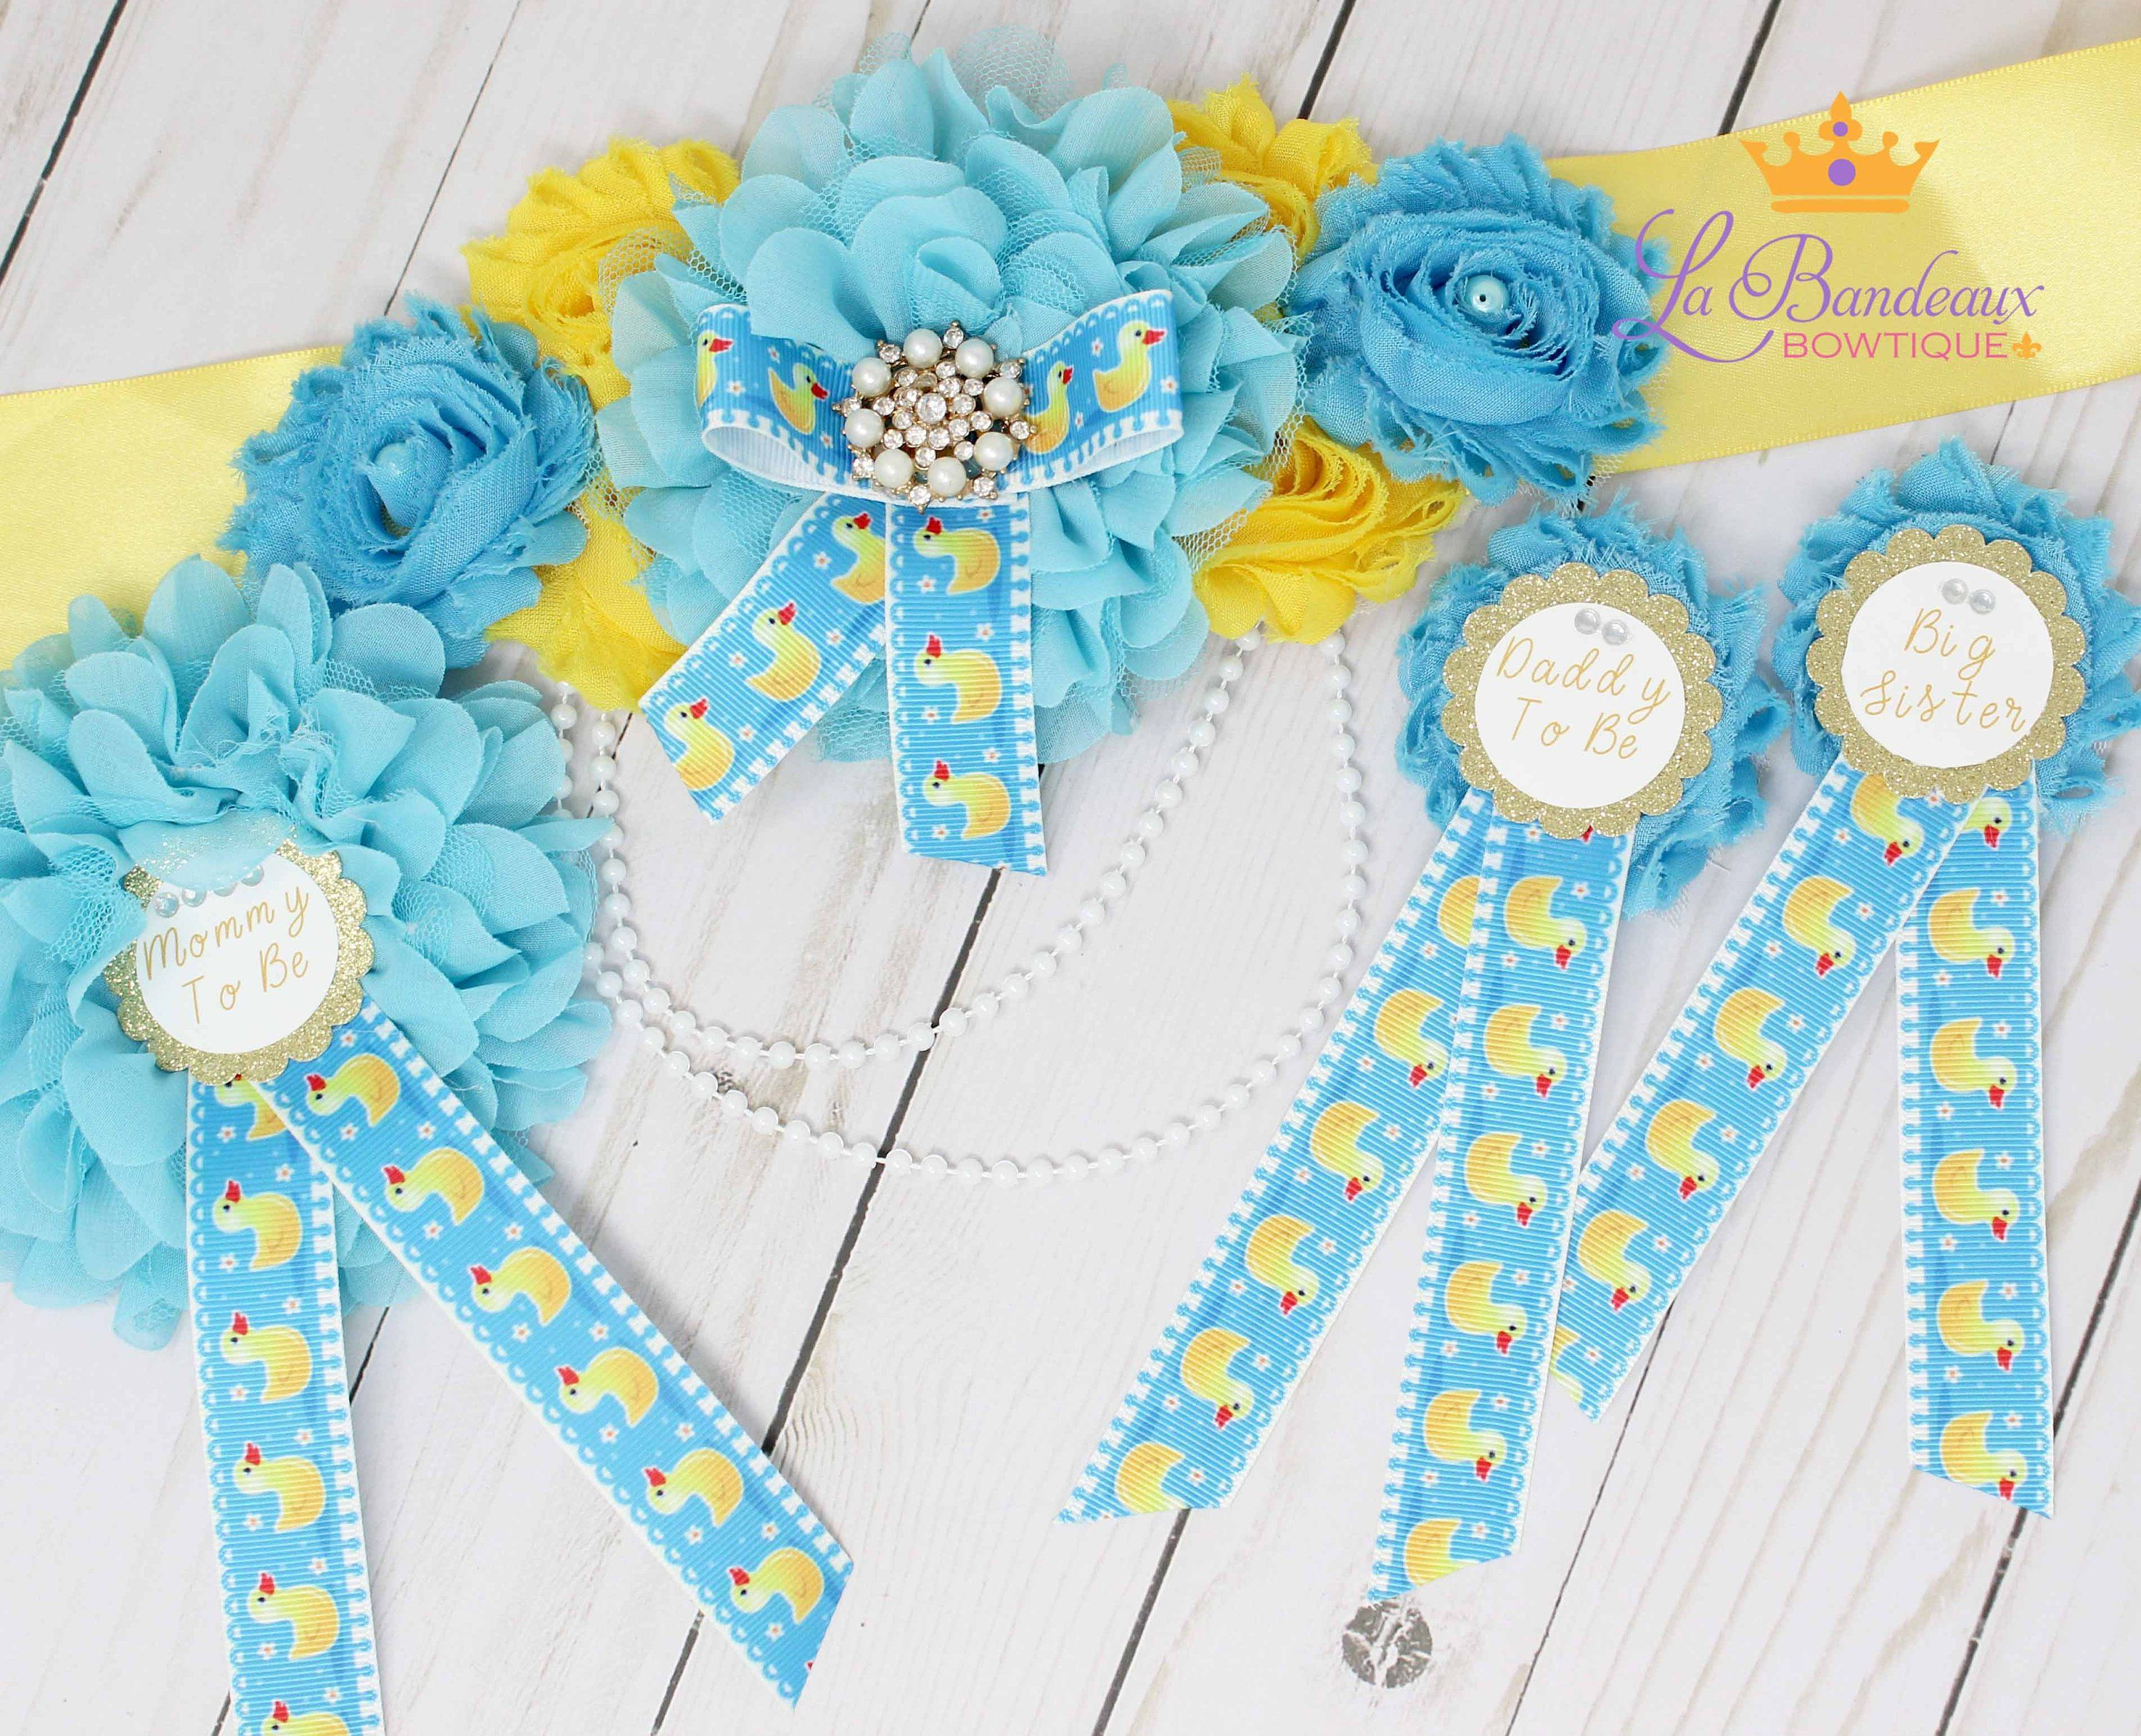 New Rubber Ducky Baby Shower Baby Boy Baby Shower Sash Duck Sash Duck Baby Shower Daddy To Be Corsage Pin Set Rubber Duck Belly Belt Sash Baby Shower Sash Baby Shower Duck Rubber Ducky Baby Shower